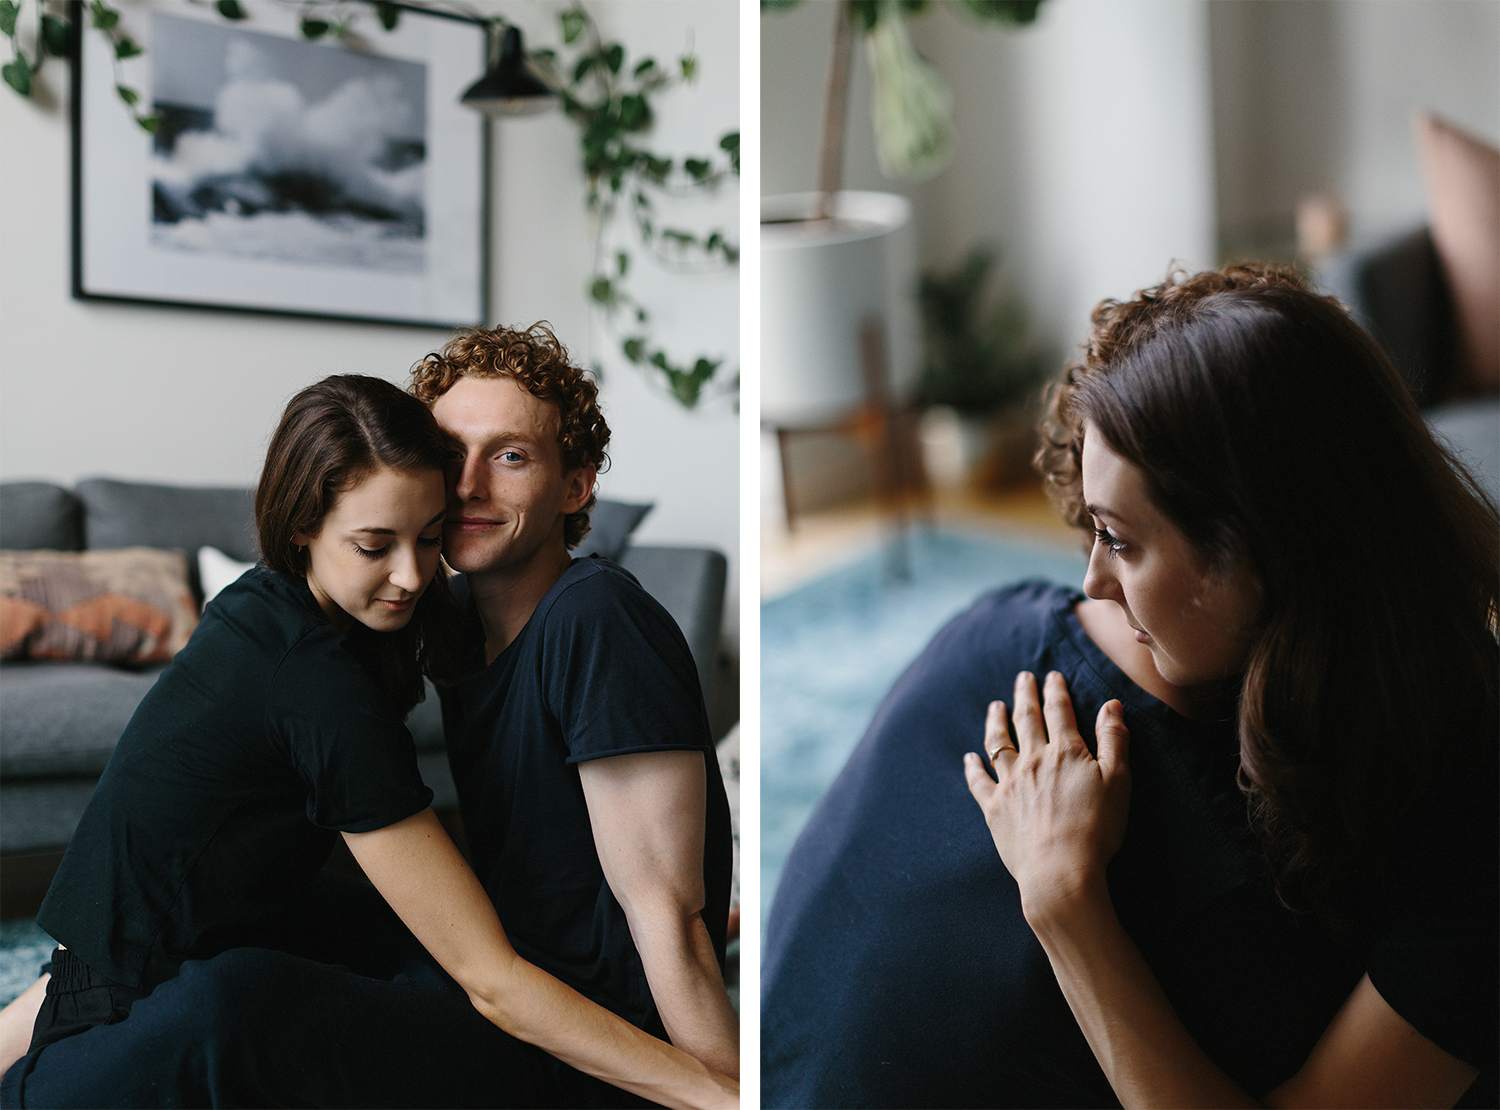 spread-18-ryanne-hollies-photography-toronto-engagement-session-liberty-village-kinfolk-life-magazine-fashion-editorial-in-home-session-urban-outfitters-home-junebug-weddings-green-wedding-shoes-inspiration-models-authentic.jpg